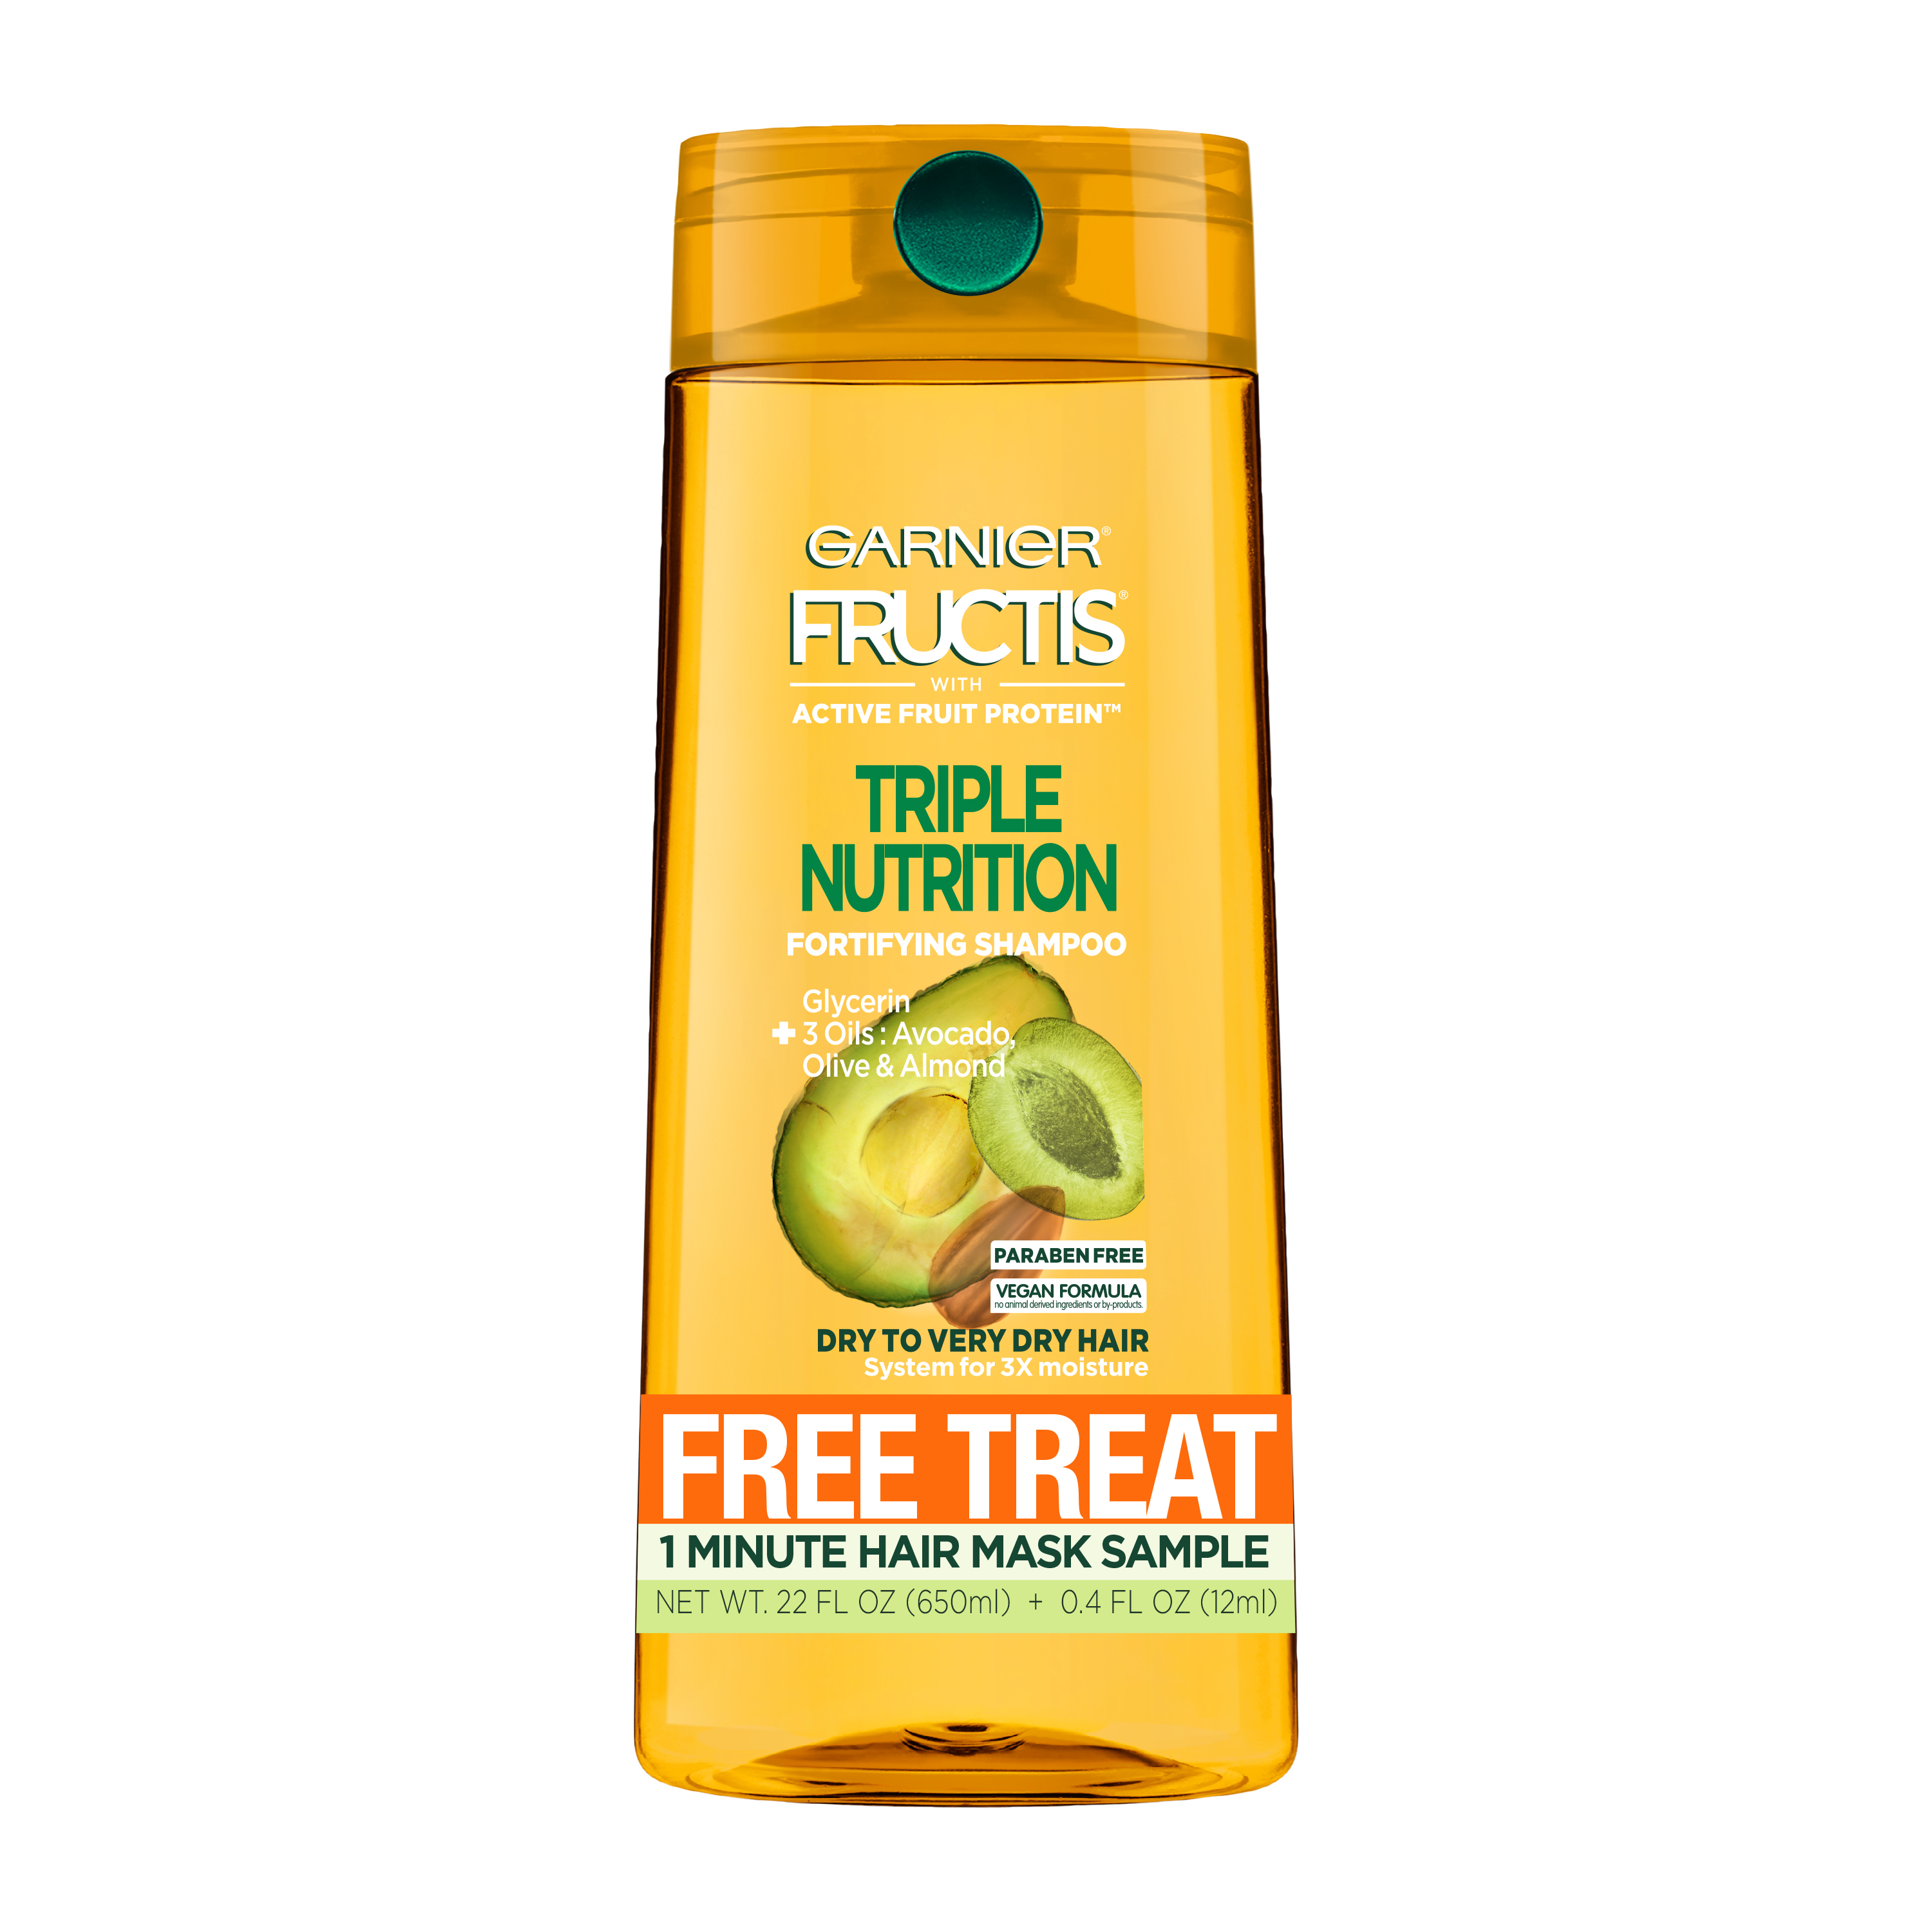 Garnier Fructis Triple Nutrition Shampoo with a Free Smoothing Treat 1 Minute Hair Mask Sample, 1 kit